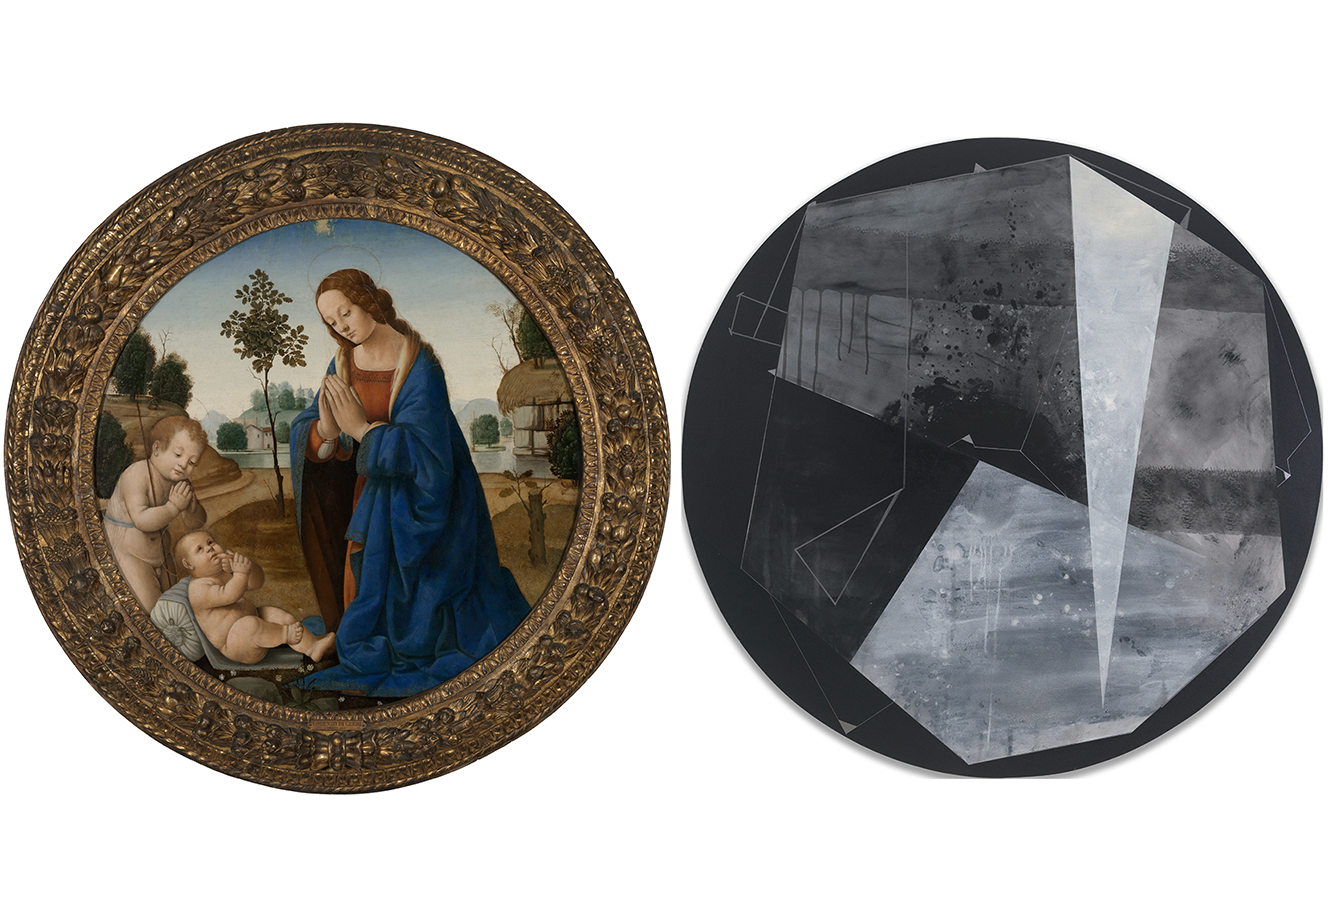 Circular painting of a woman praying. Circular painting of black and gray geometrical shapes.